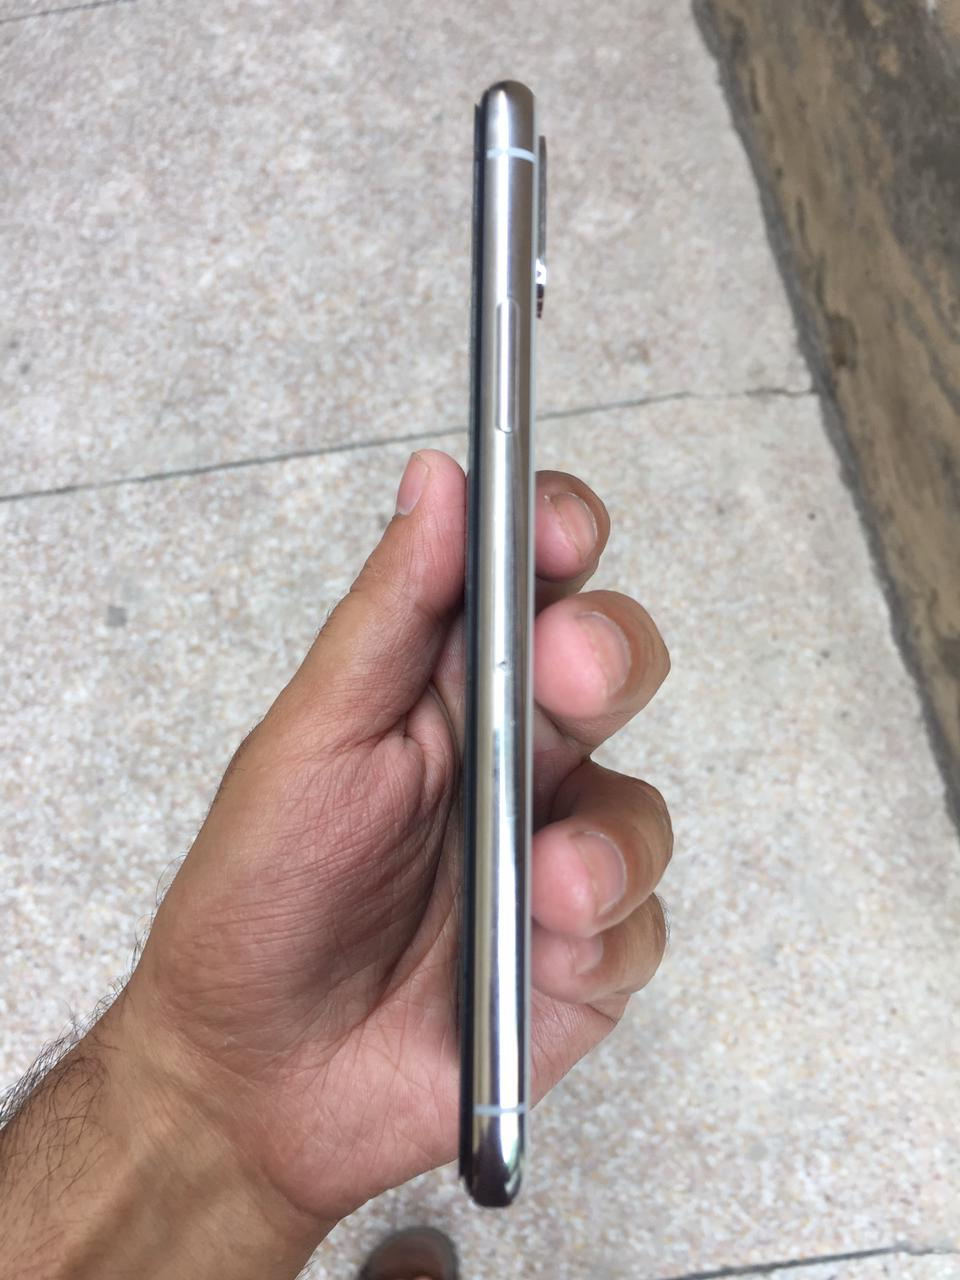 Iphone X 256 GB PTA Approved - photo 3